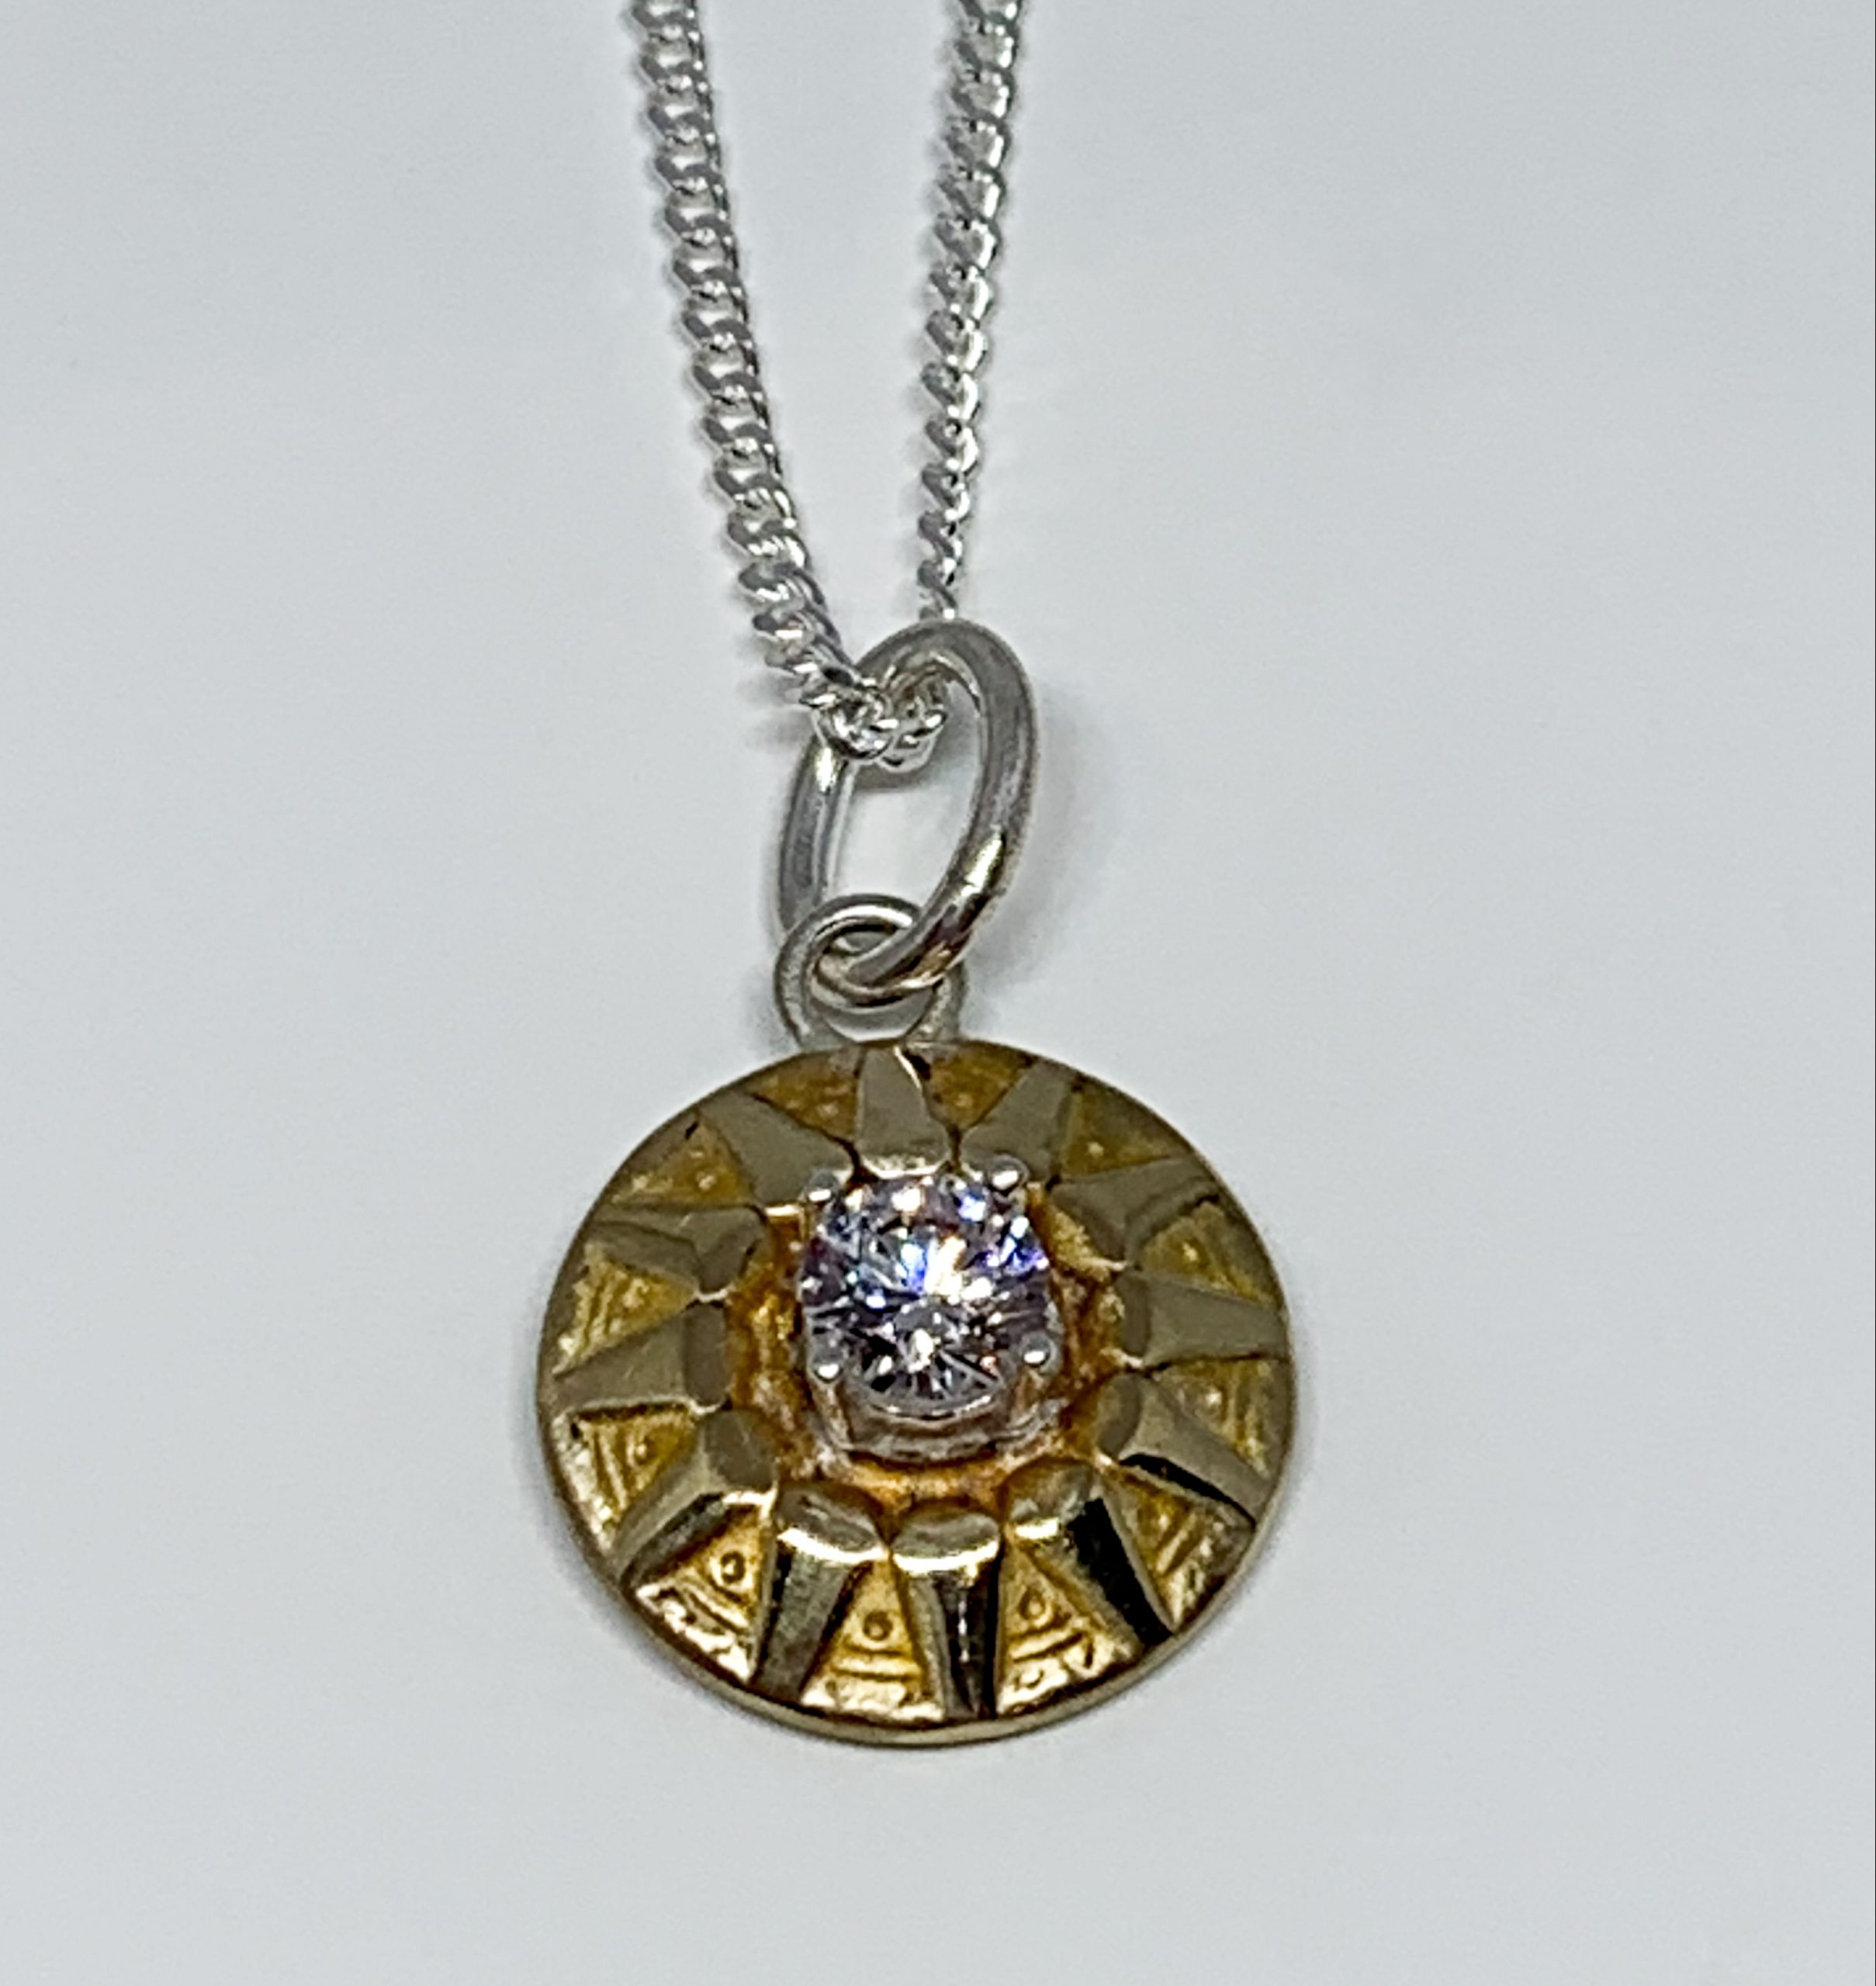 Bronze, sterling silver, and CZ sunburst necklace by Karyn Chopik | Effusion Art Gallery + Cast Glass Studio, Invermere BC